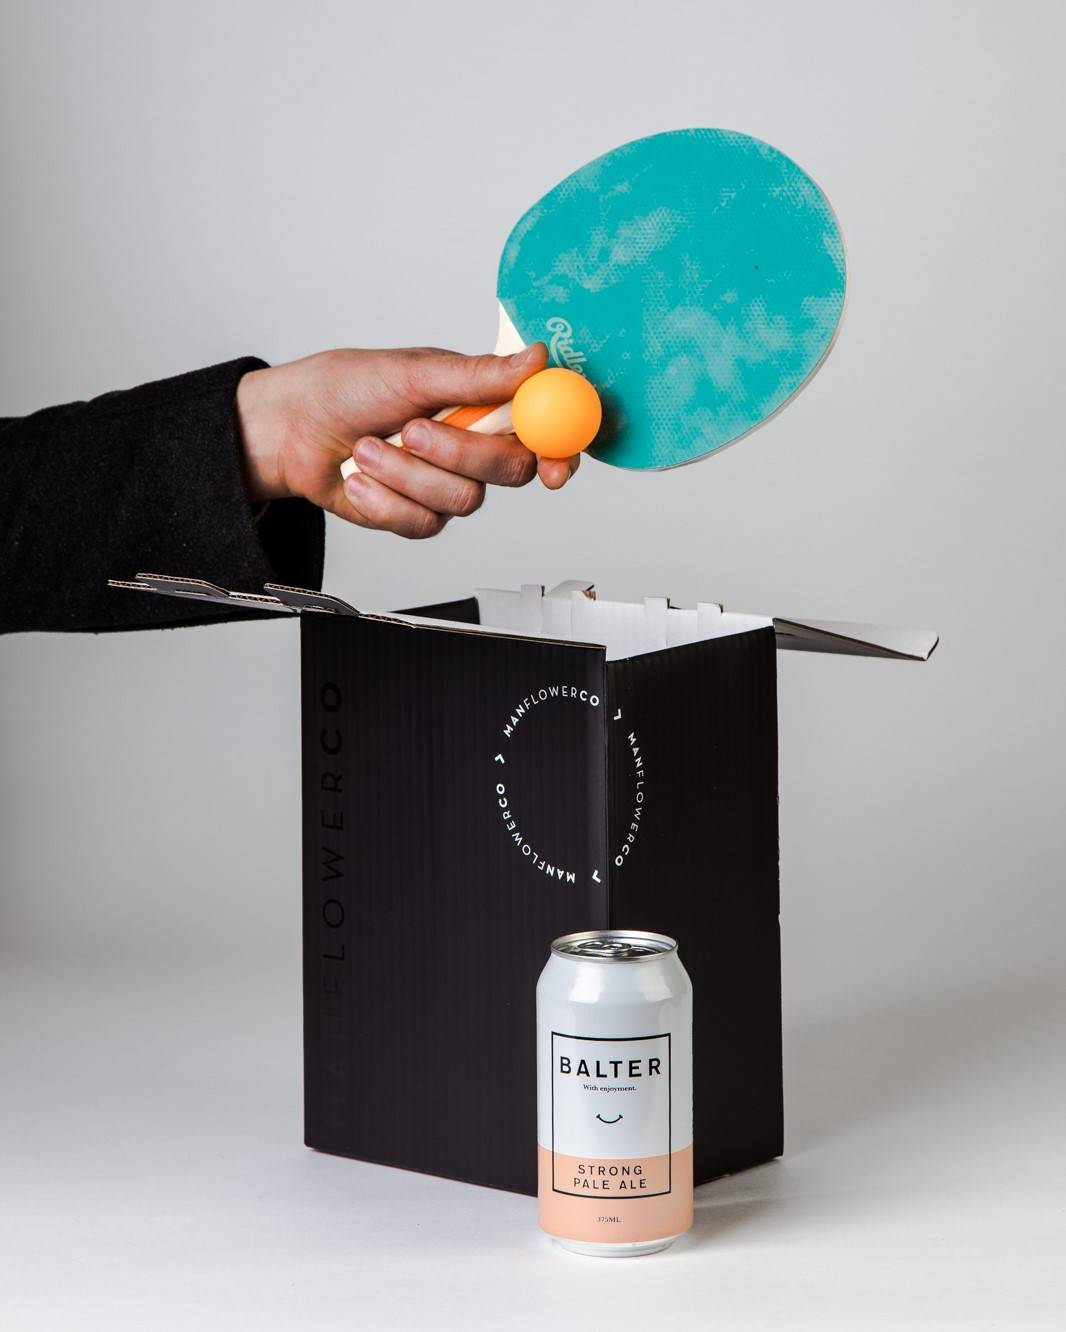 Table Tennis Set + Beer, part of Manflower Co's range of Father's Day Gifts.